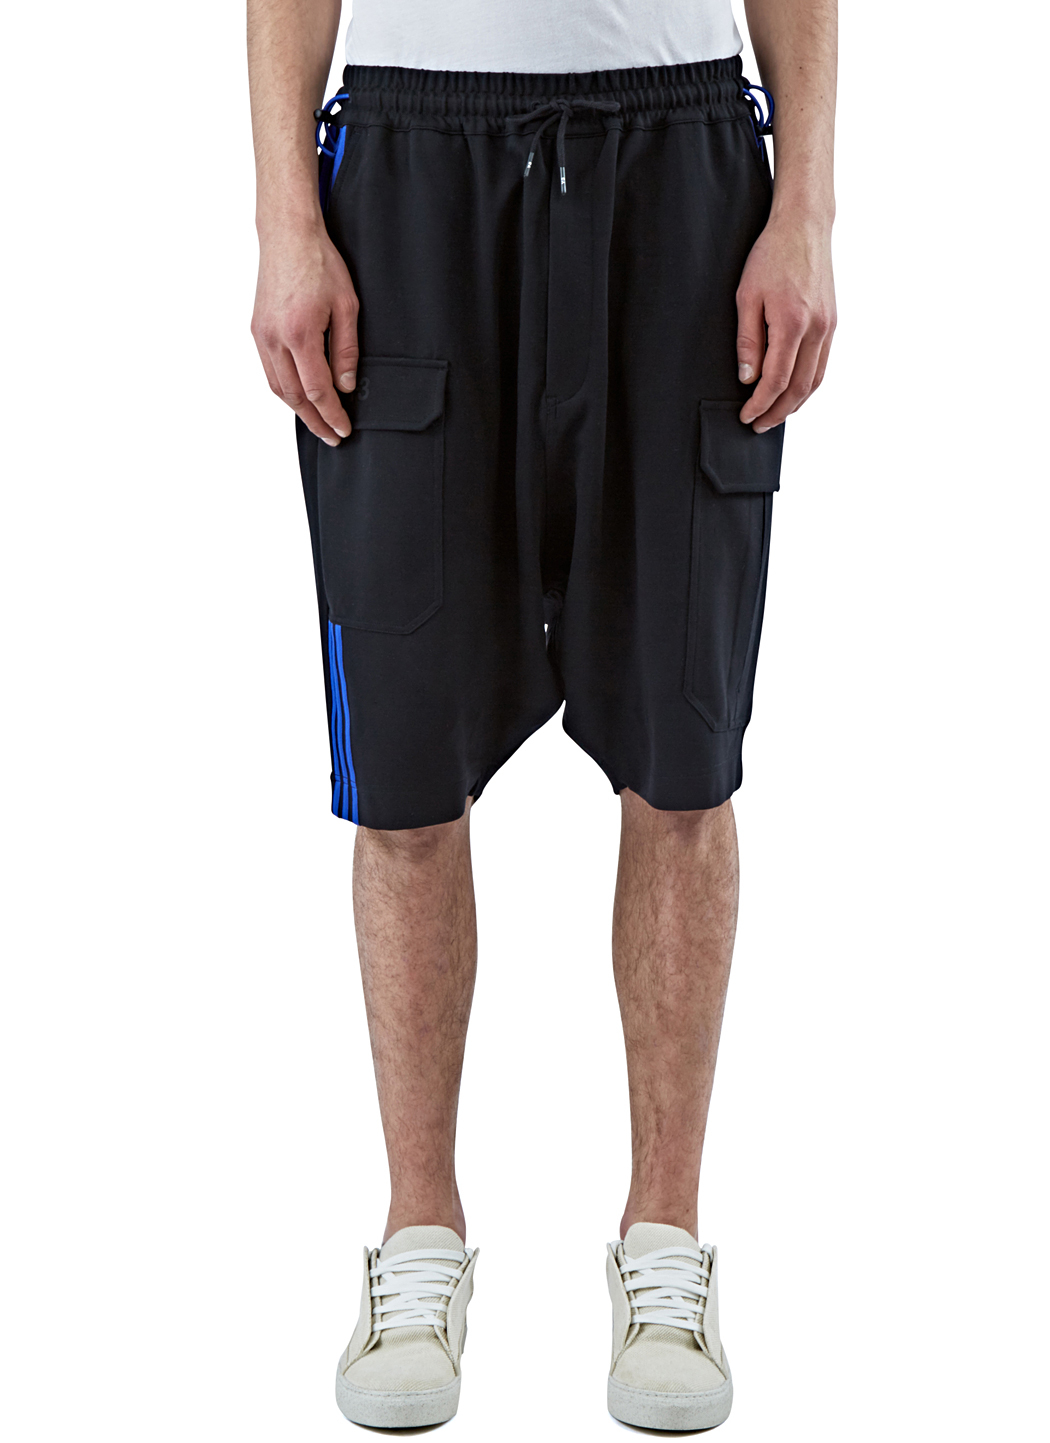 The Rail Clothing Long Men S Shorts